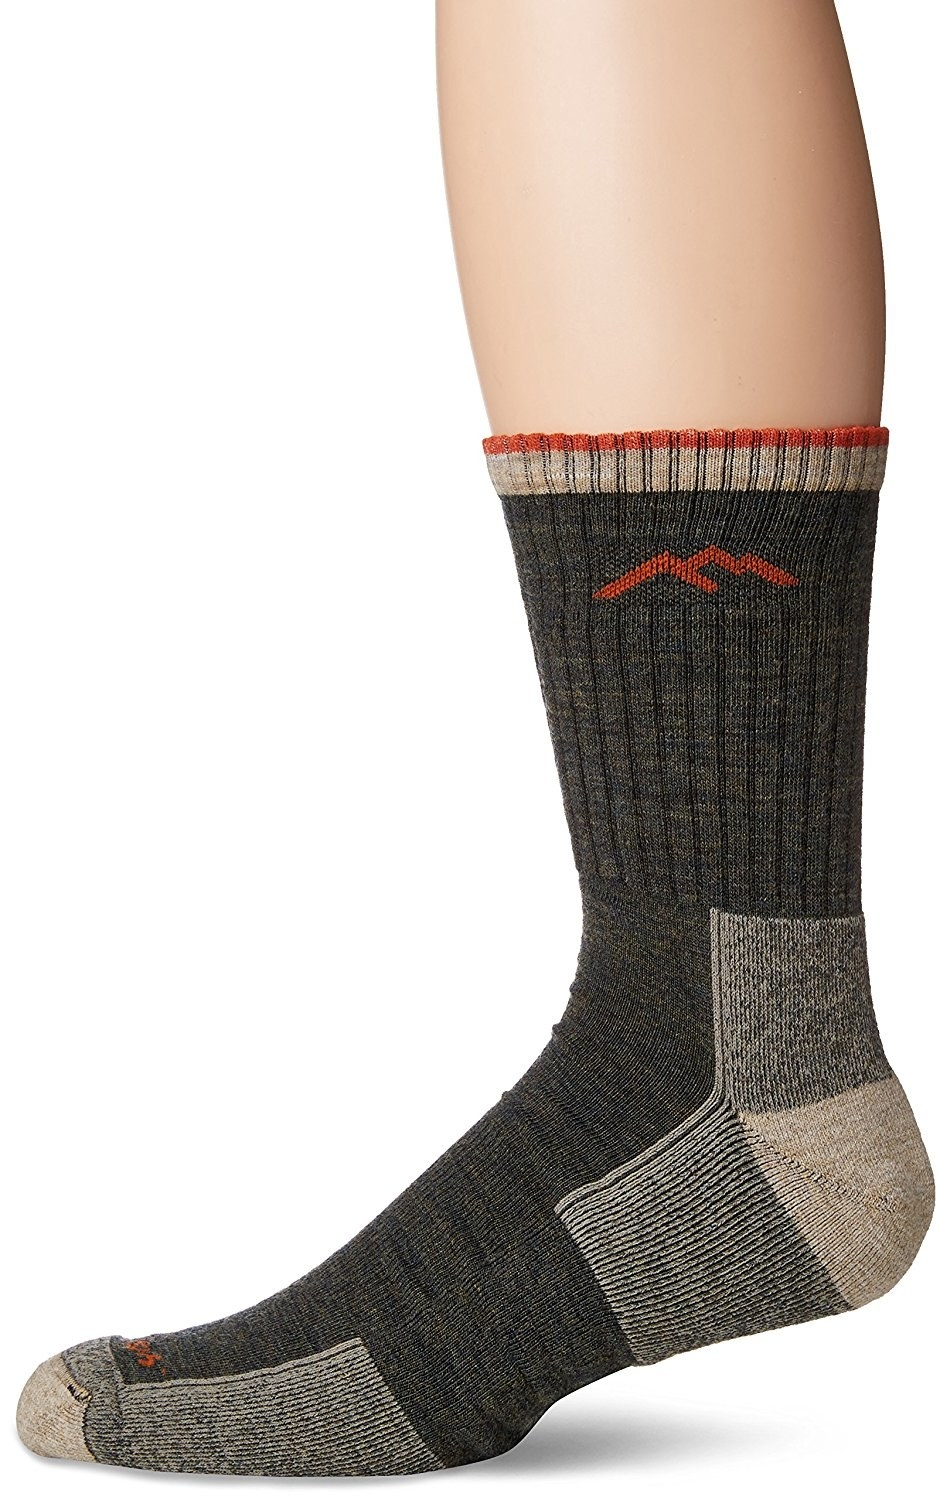 b29335c22 Literally every pair of Darn Tough socks is highly rated, but the most  popular on Amazon are the men's merino wool hiking socks ($19.95).